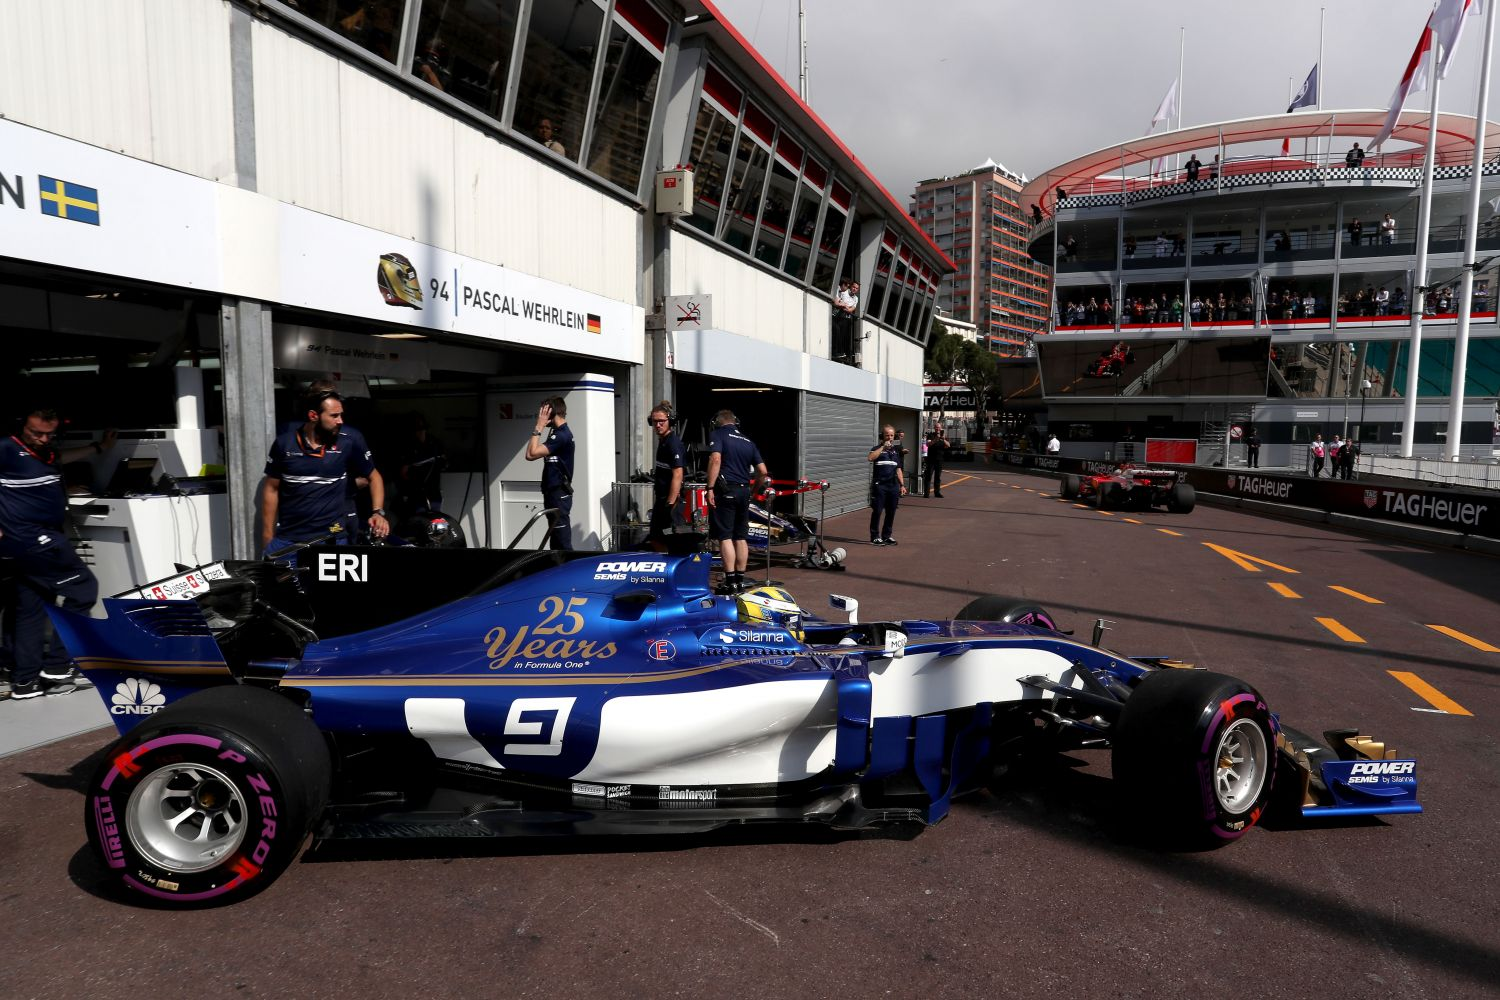 © Sauber - Les ultra tendres étaient indestructibles à Monaco